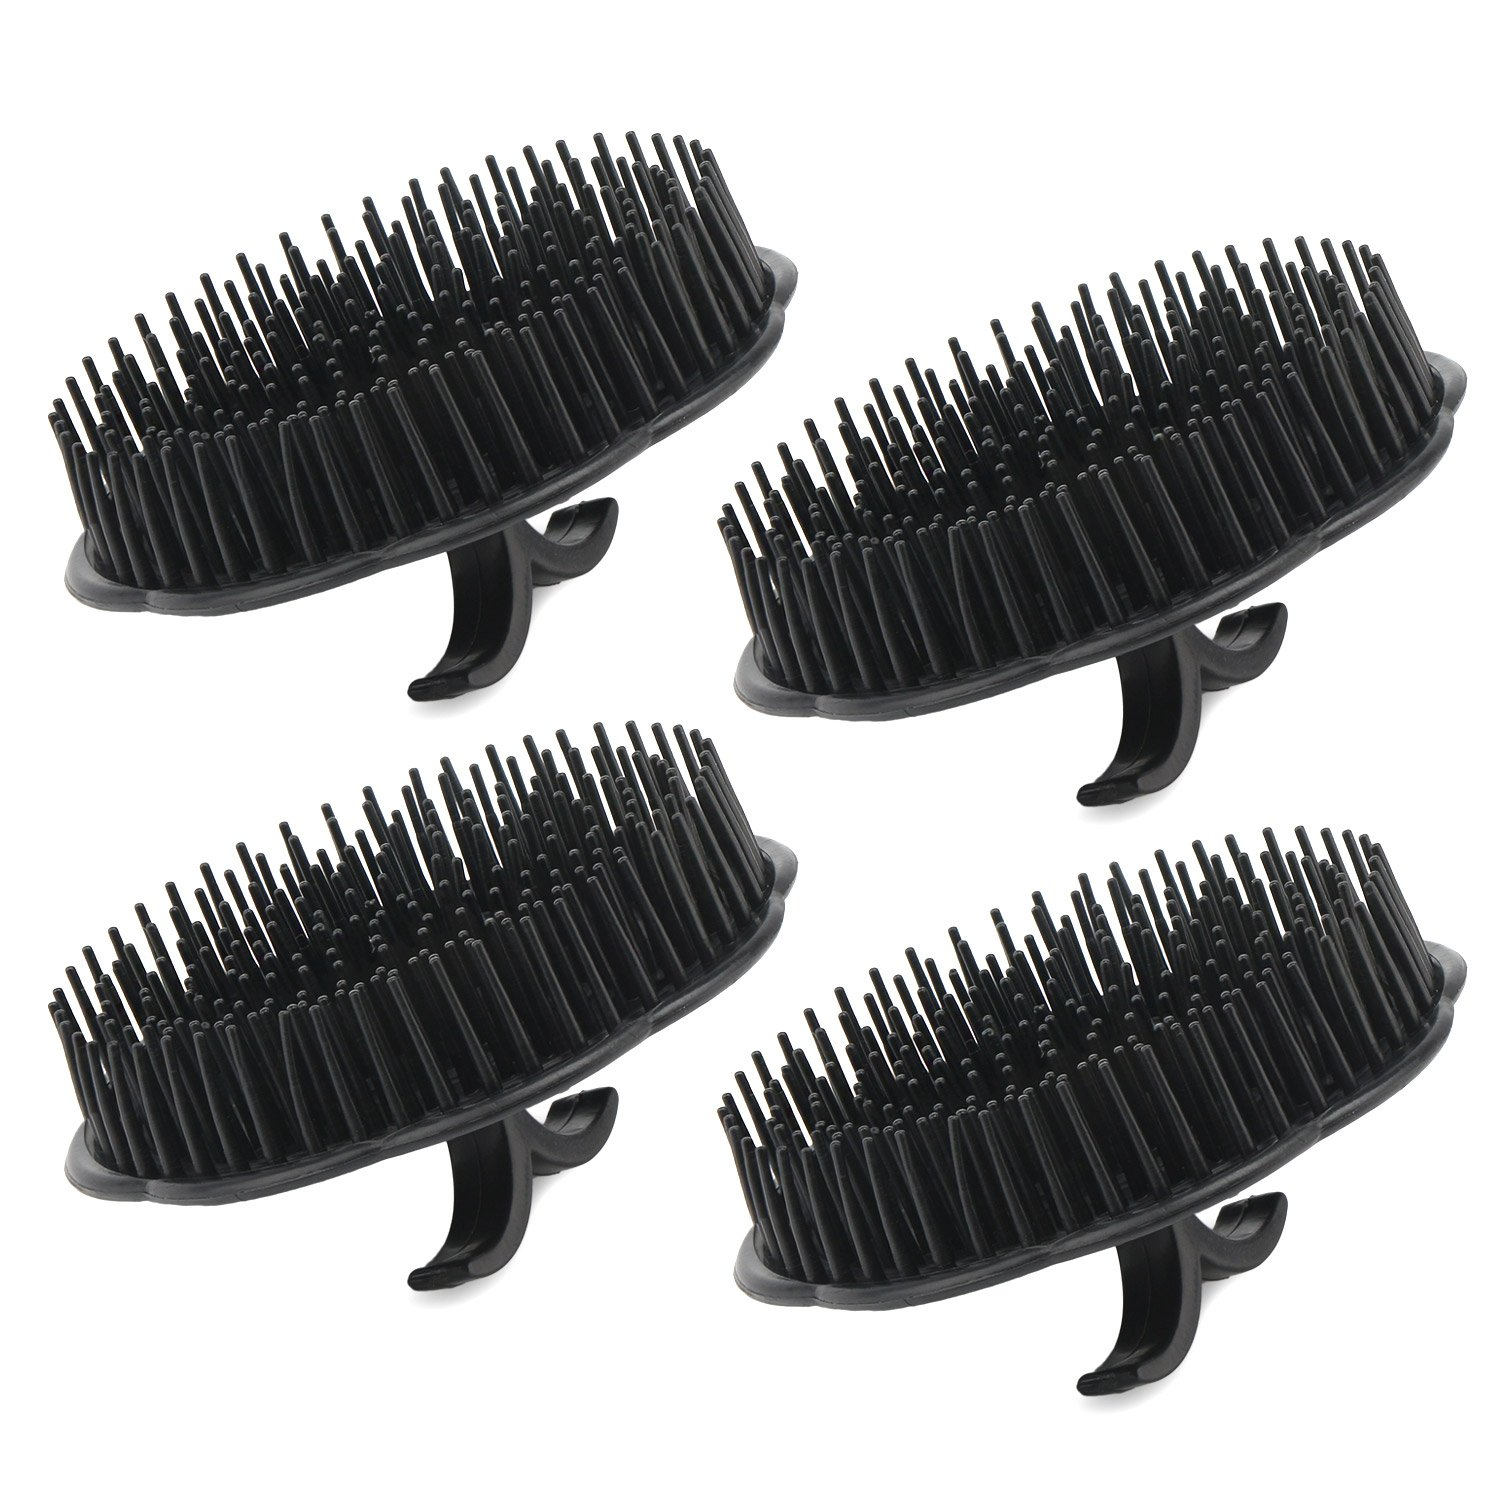 4pcs Segbeauty Scalp Massager Shampoo Brush, Shampoo Massage Brush Floriated Shower Comb, Scalp Massager for Hair Growth Beard Brush Pet Grooming Brushes - Black